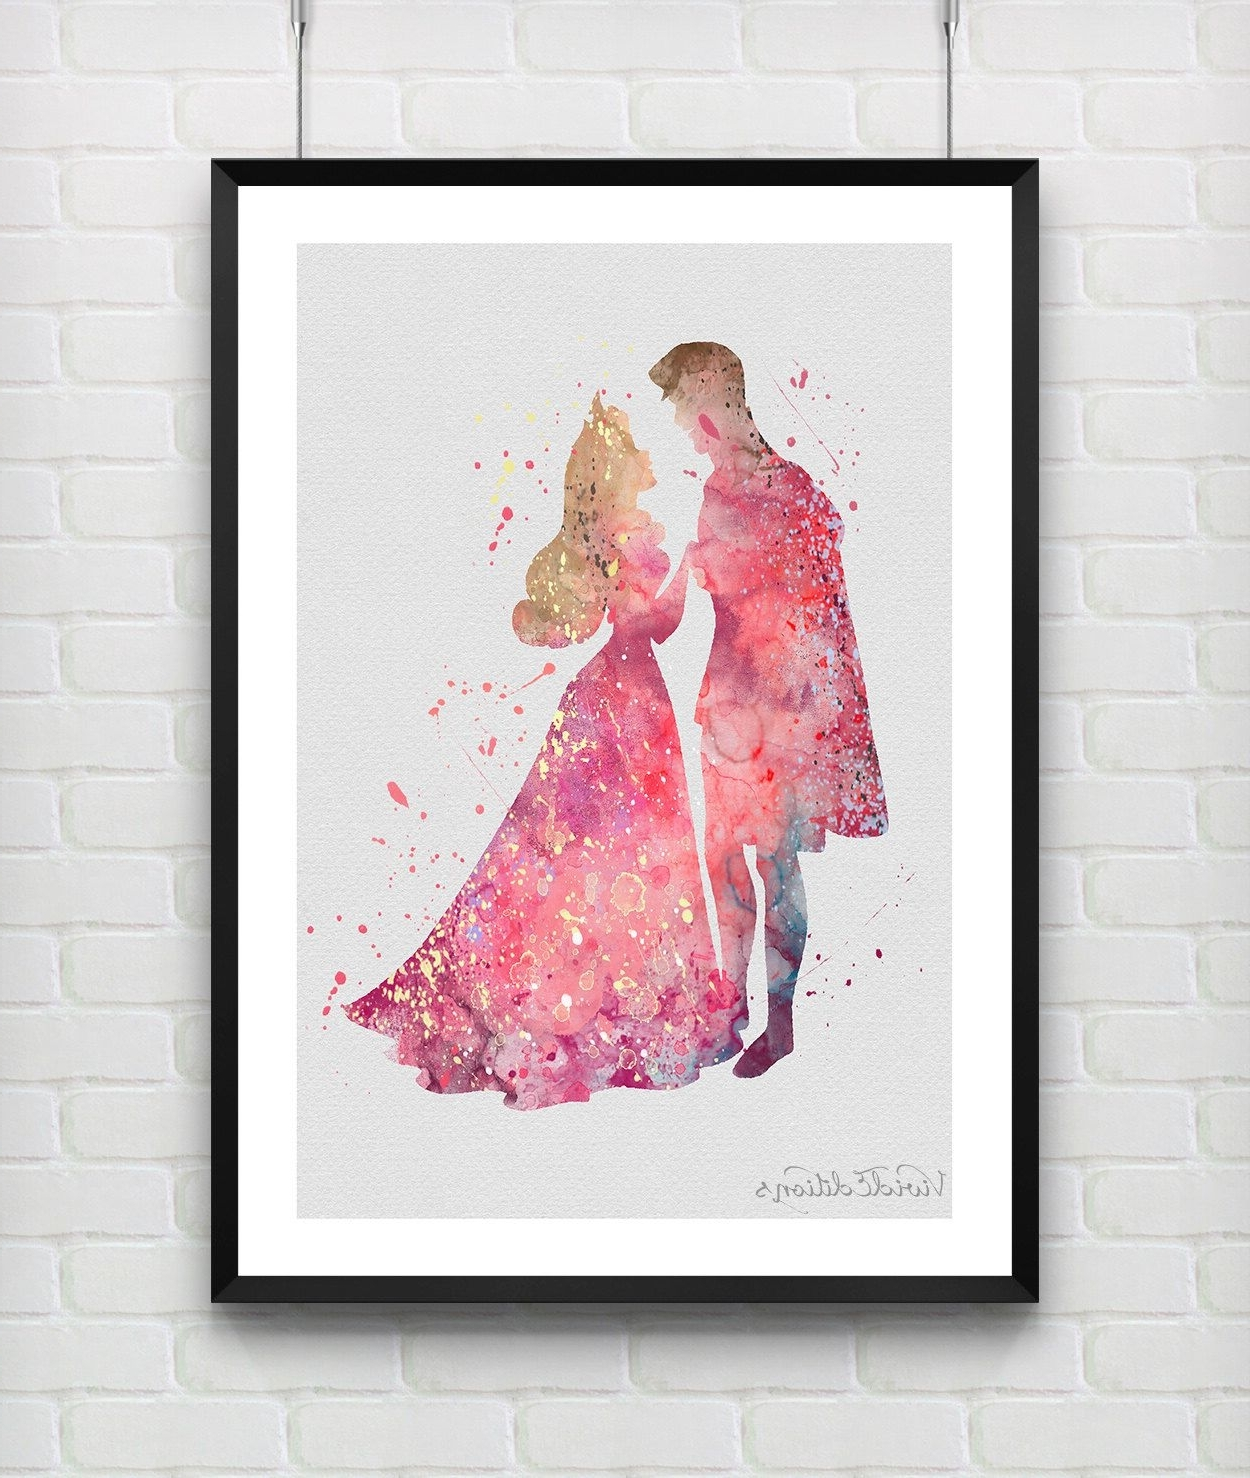 2017 Disney Princess Framed Wall Art Inside Princess Aurora & Prince Philip Sleeping Beauty Disney Watercolor (View 1 of 15)